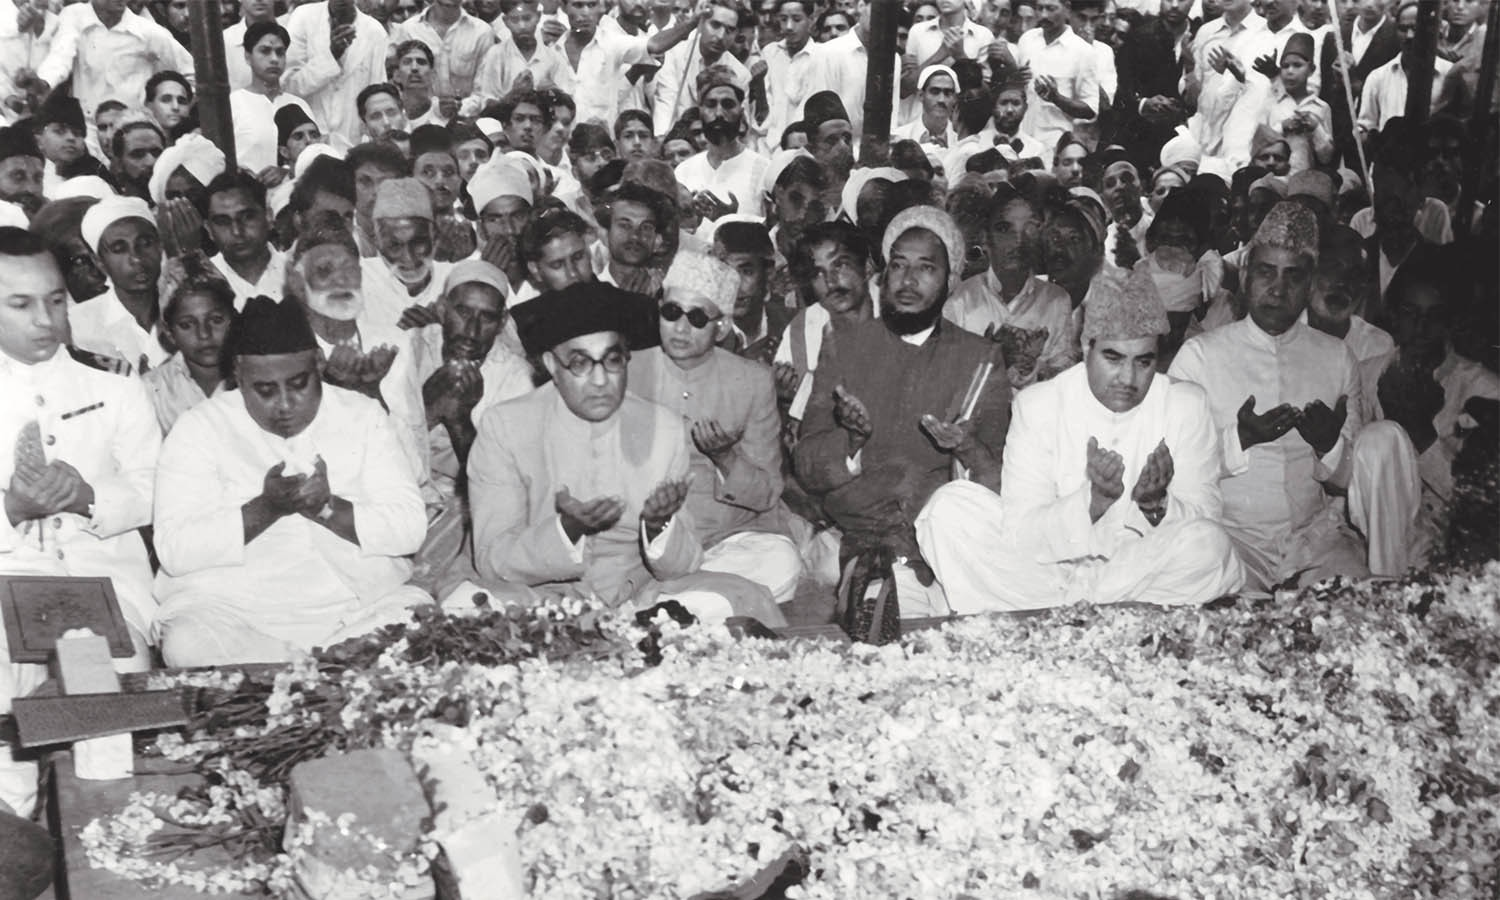 From left to right: Khawaja Nazimuddin, Nawabzada Liaquat Ali Khan and Yusuf Haroon are seen offering prayers at the gravesite of Quaid-i-Azam Mohammad Ali Jinnah. | Photo: The Press Information Department, Ministry of Information, Broadcasting & National Heritage, Islamabad (PID)